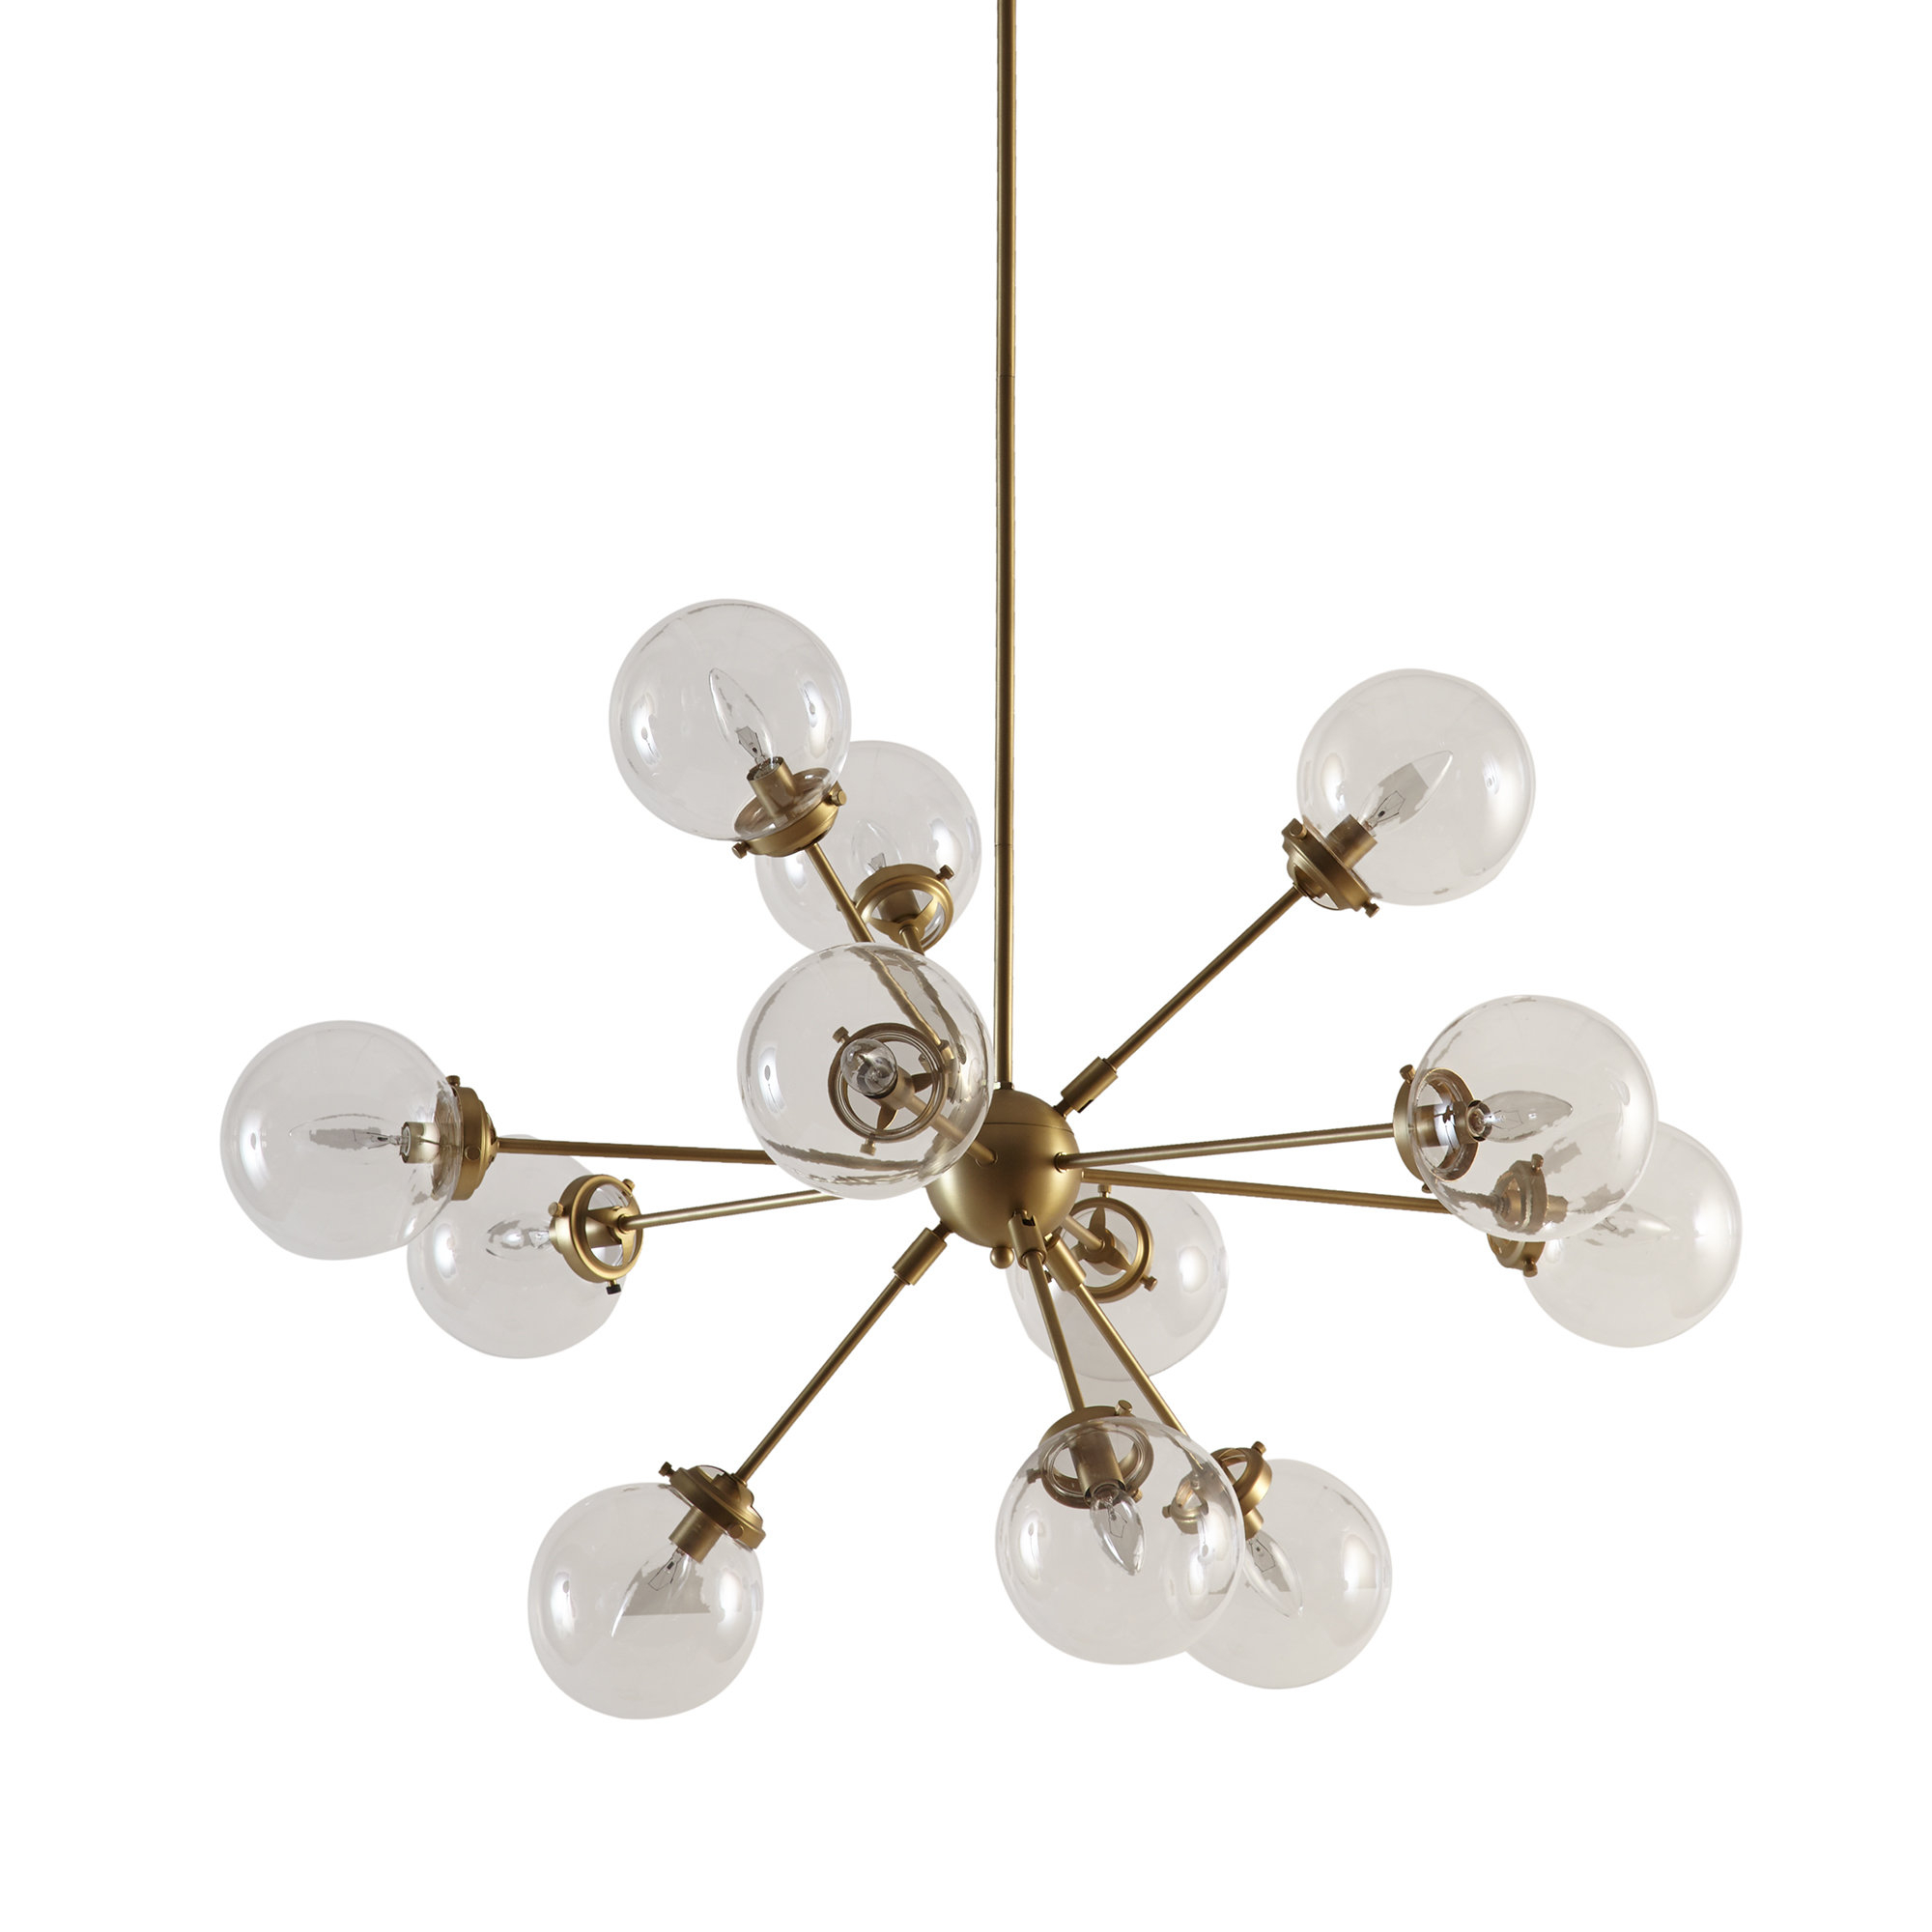 Eastbourne 6 Light Unique / Statement Chandeliers Throughout 2019 Modern & Contemporary Gold Geometric Light Fixture (Gallery 20 of 25)